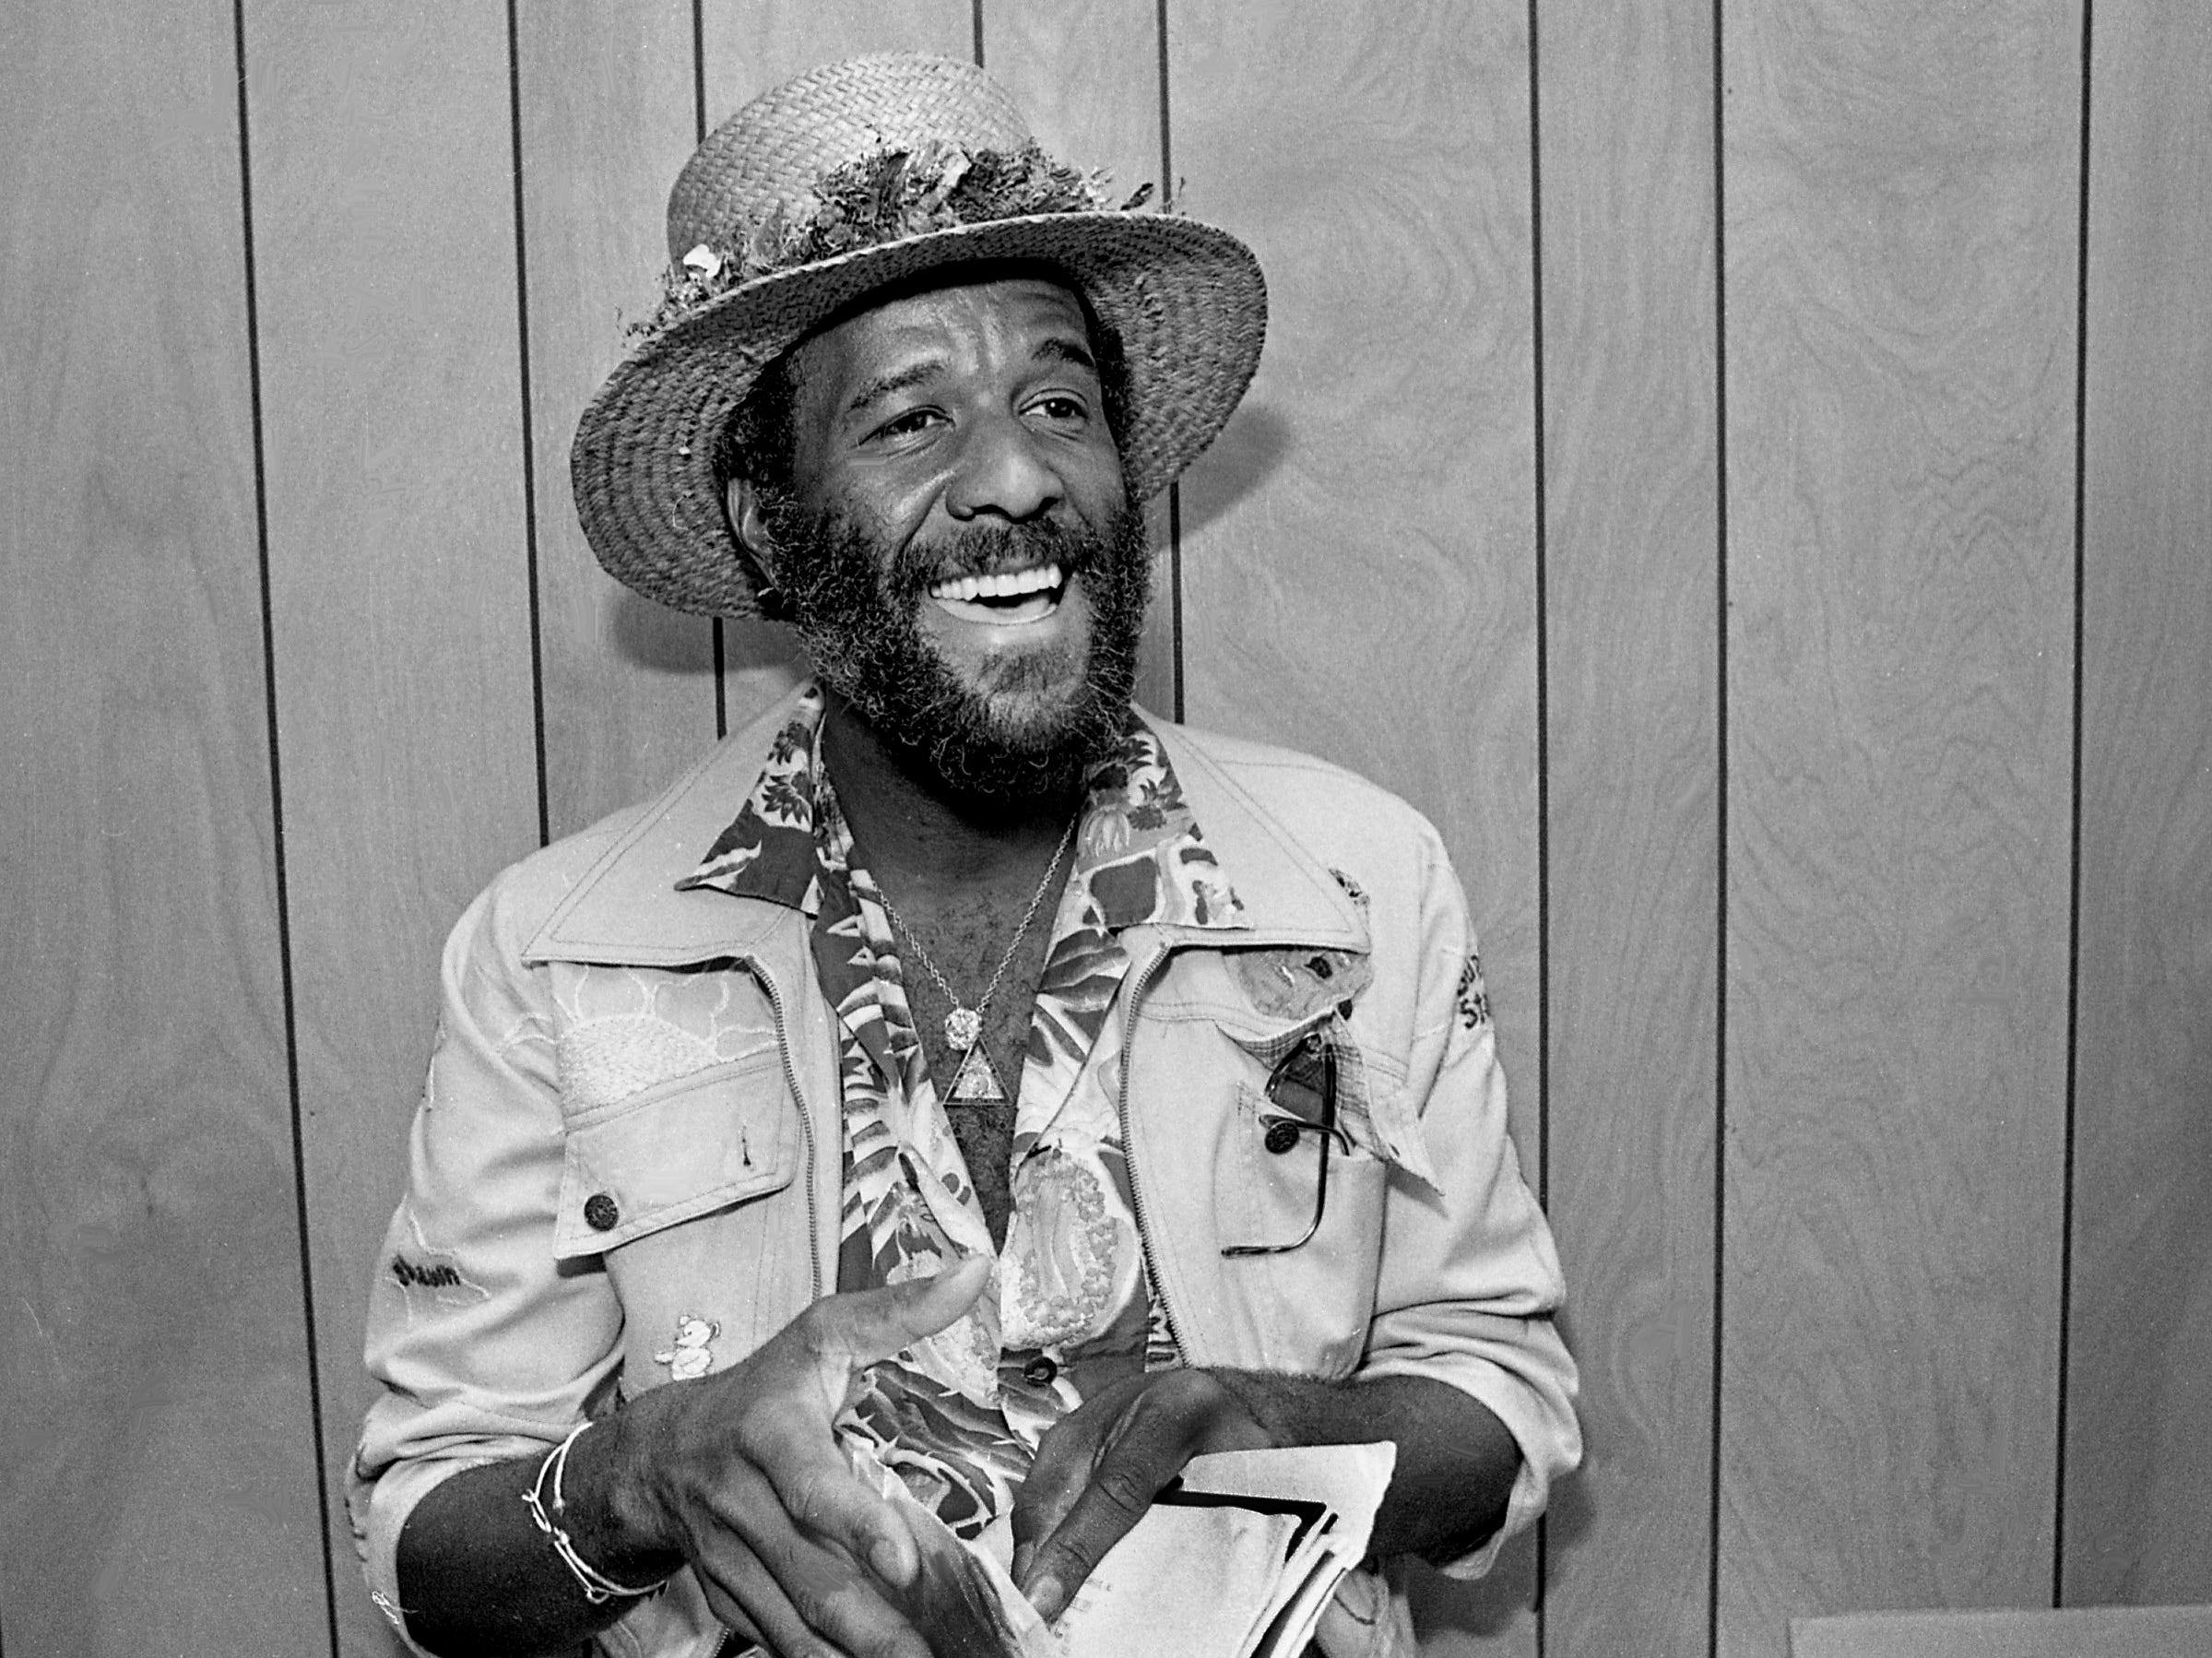 """Wally """"Famous"""" Amos, well known for his inimitable chocolate chip cookies, is giving an interview at The Tennessean on April 18, 1979. Amos recently was named national spokesman of Literacy Volunteers of America, Inc., and is in town to talk about the adult illiteracy organization."""